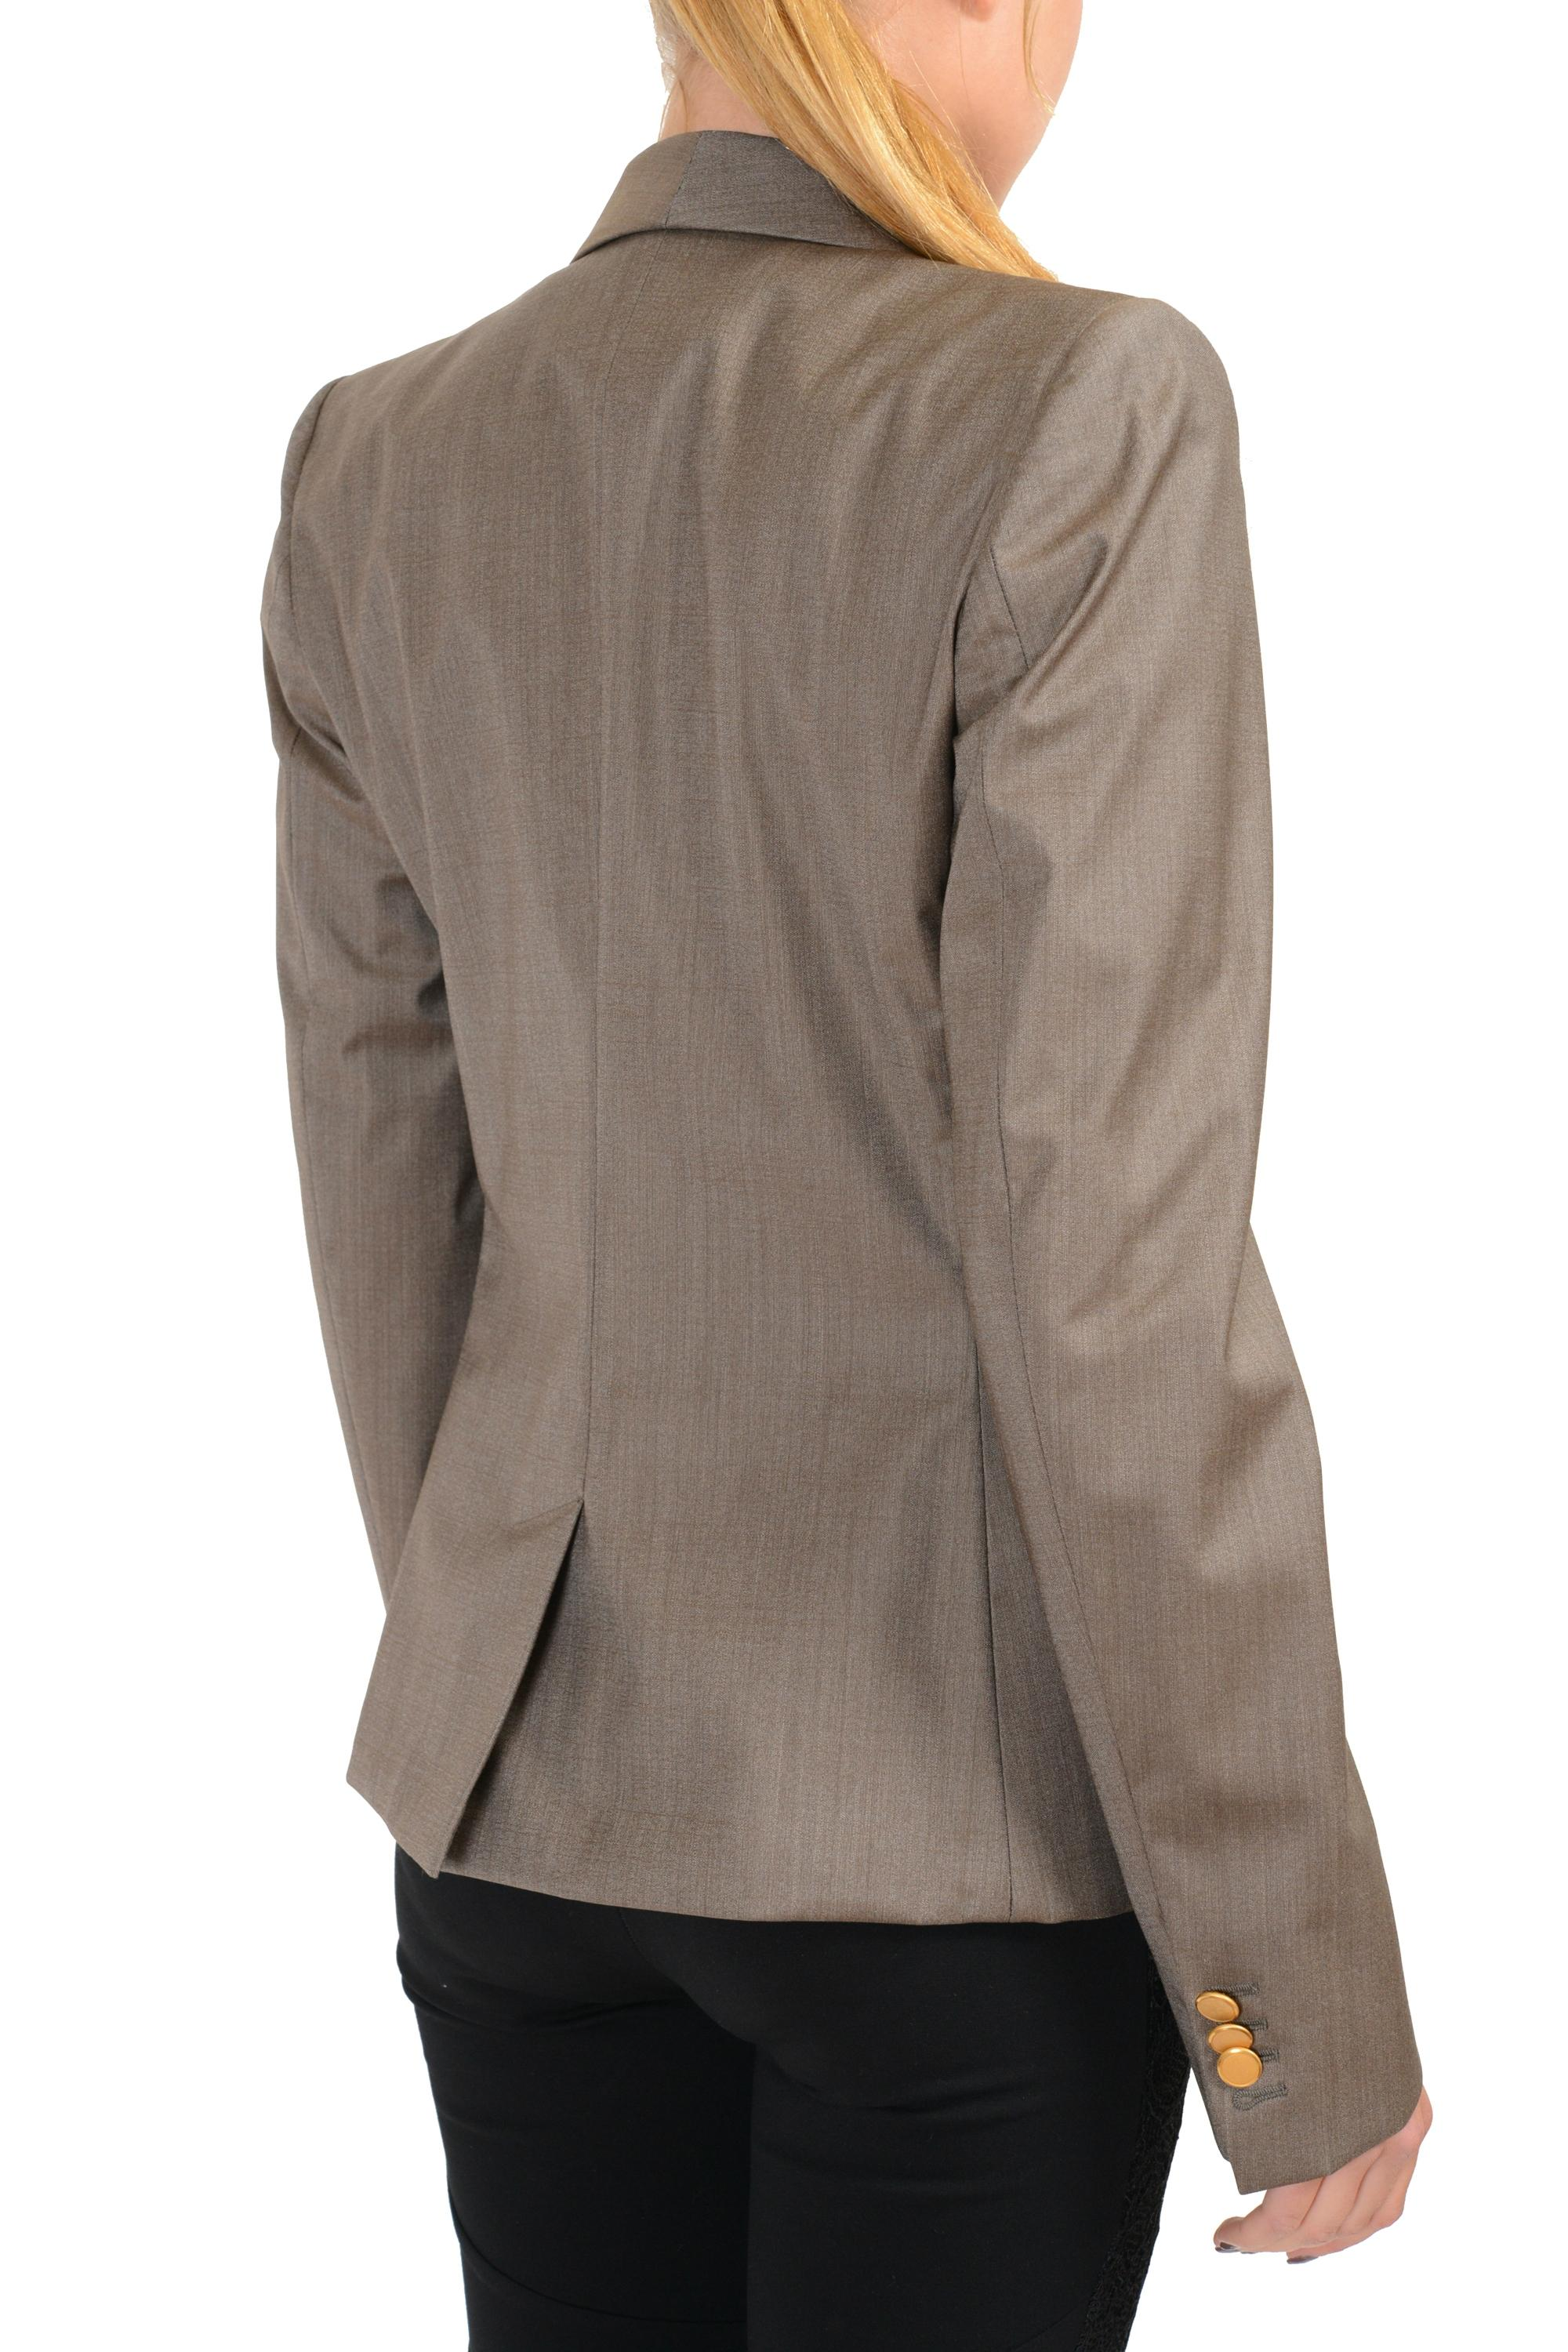 Maison Margiela V-wh-2055 Gray Blazer - 85% Off Retail chic